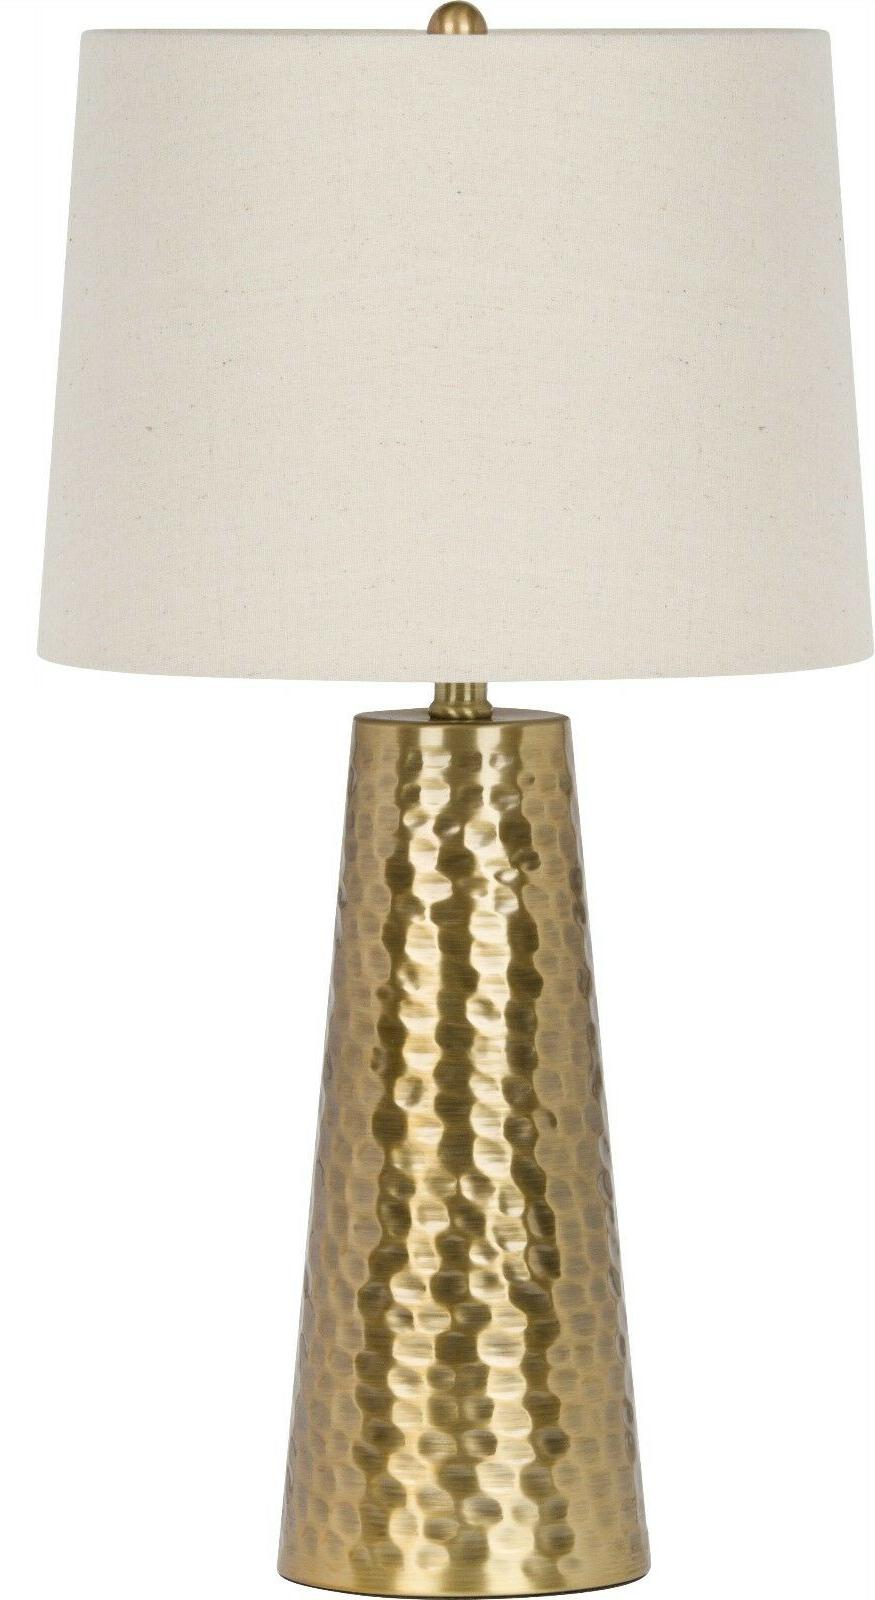 "Virtue Home Fucina Table Lamp, Brushed Gold Finish, 25.50""H,"